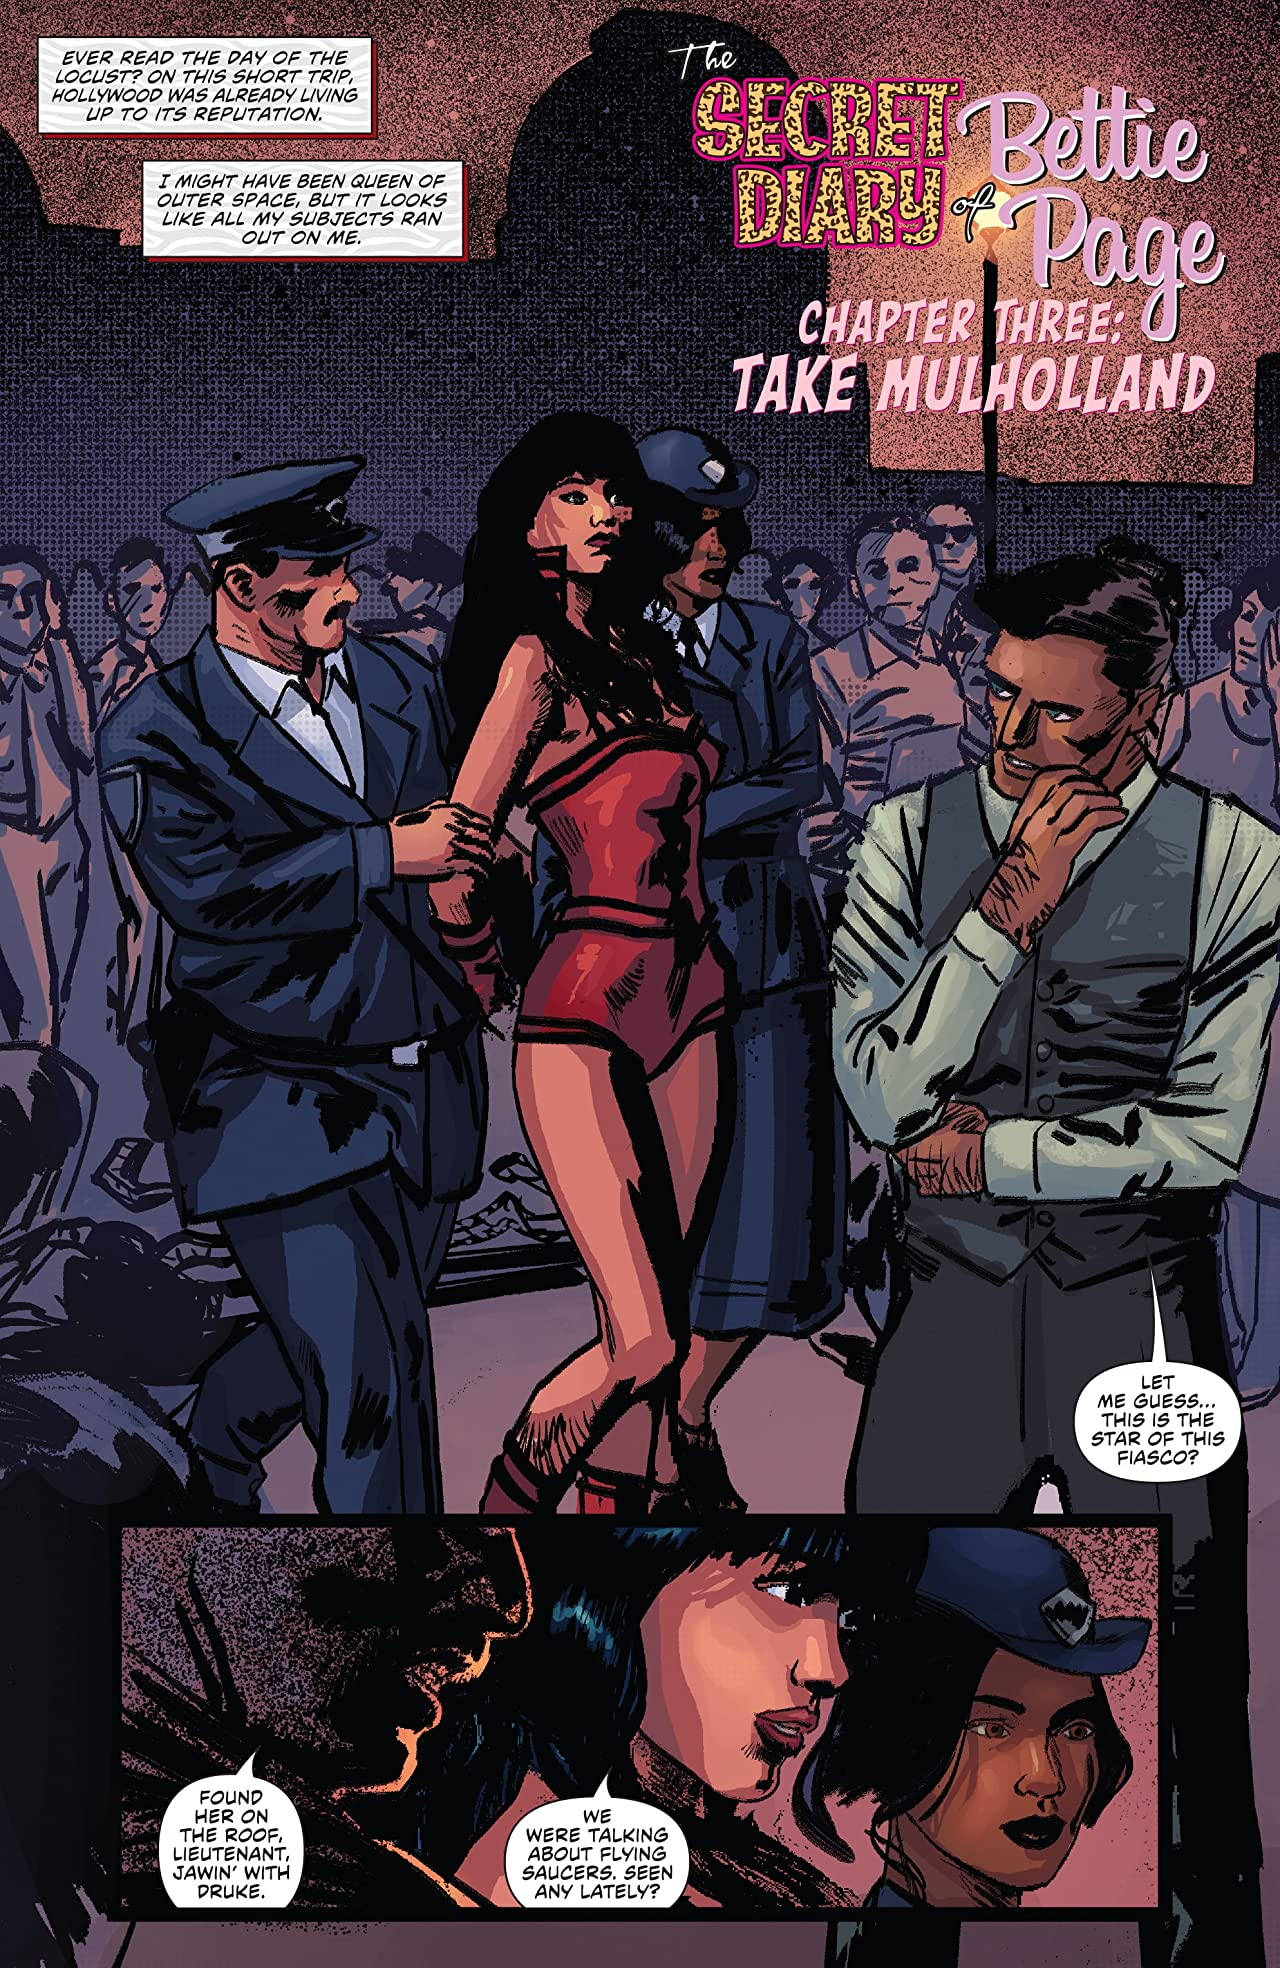 Bettie Page (2017) #3